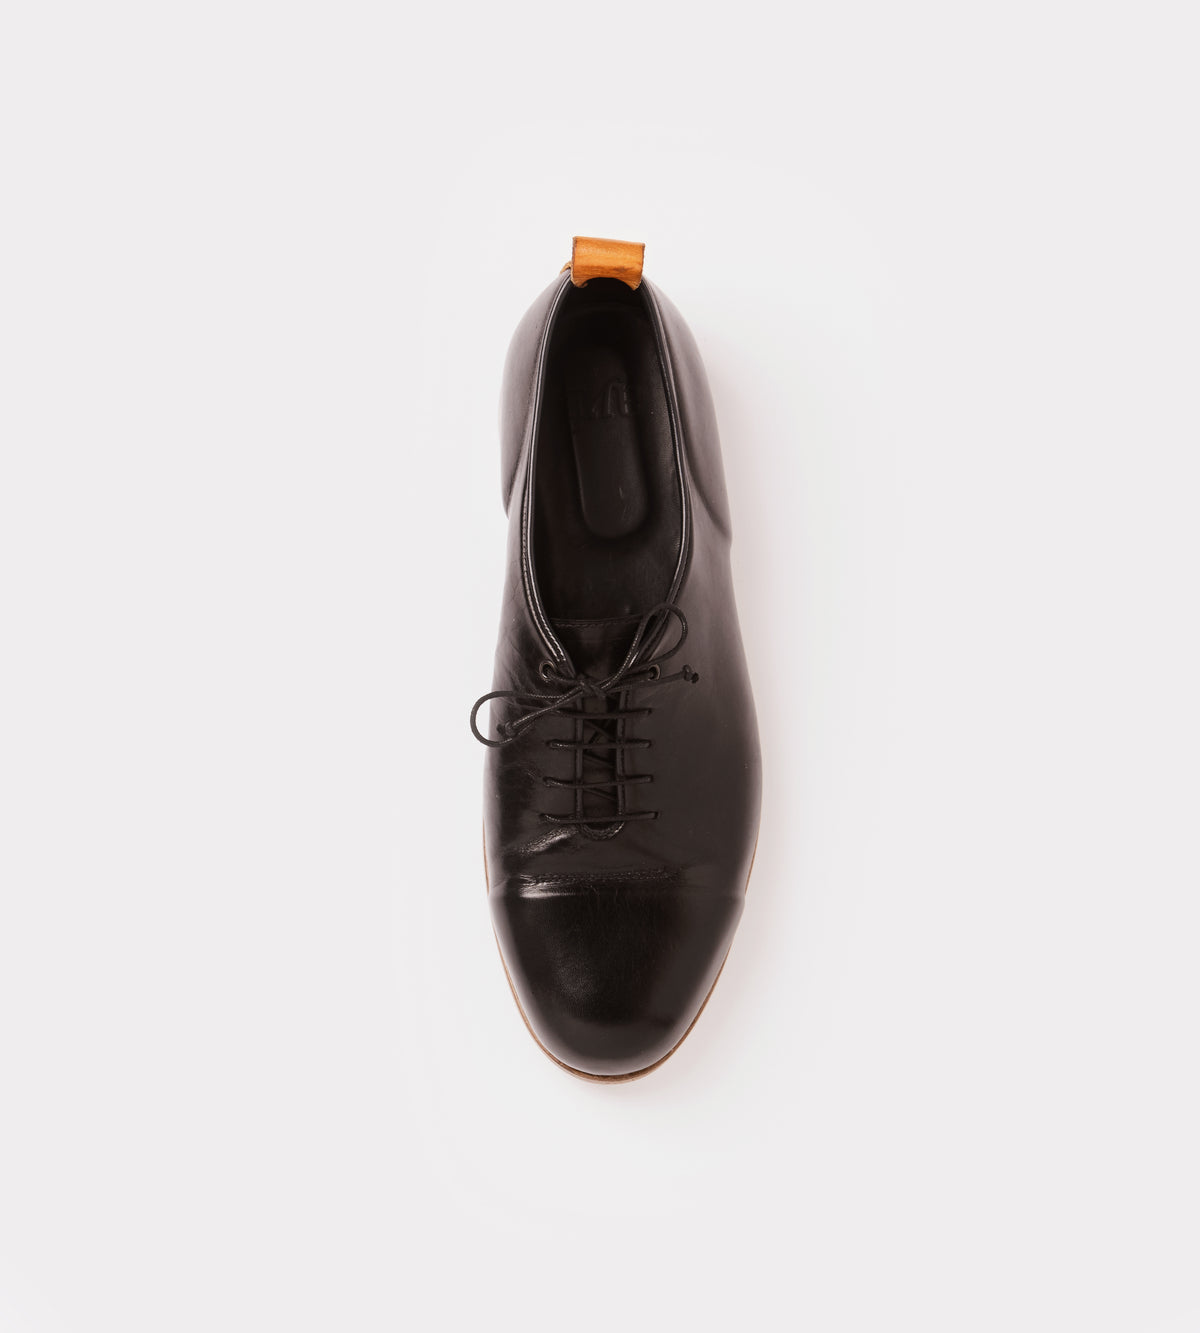 Black calf leather wholecut shoe top view